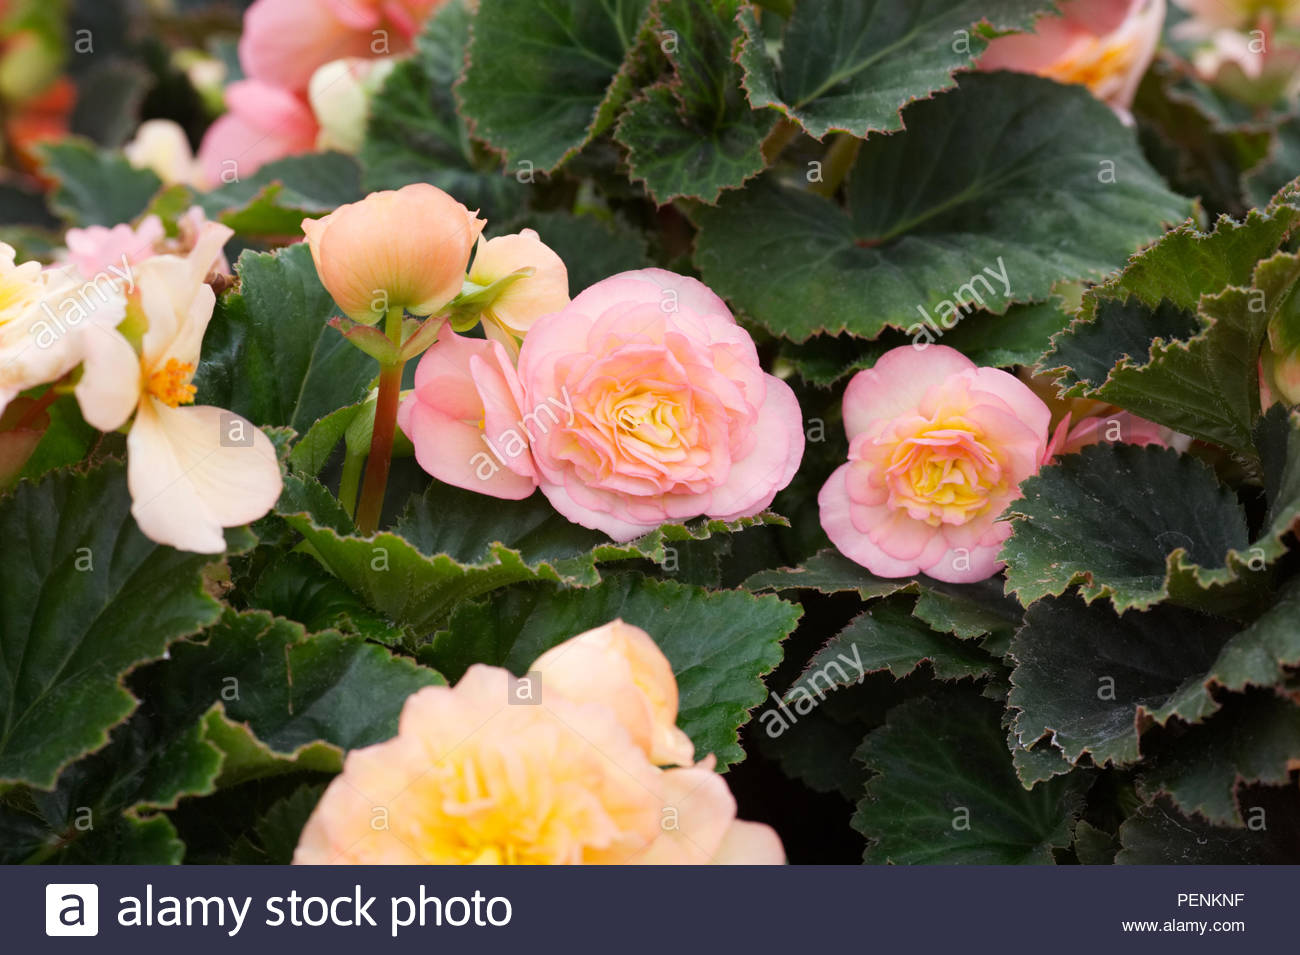 Begonia F1 'Fortune Peach Shades' flowers. - Stock Image